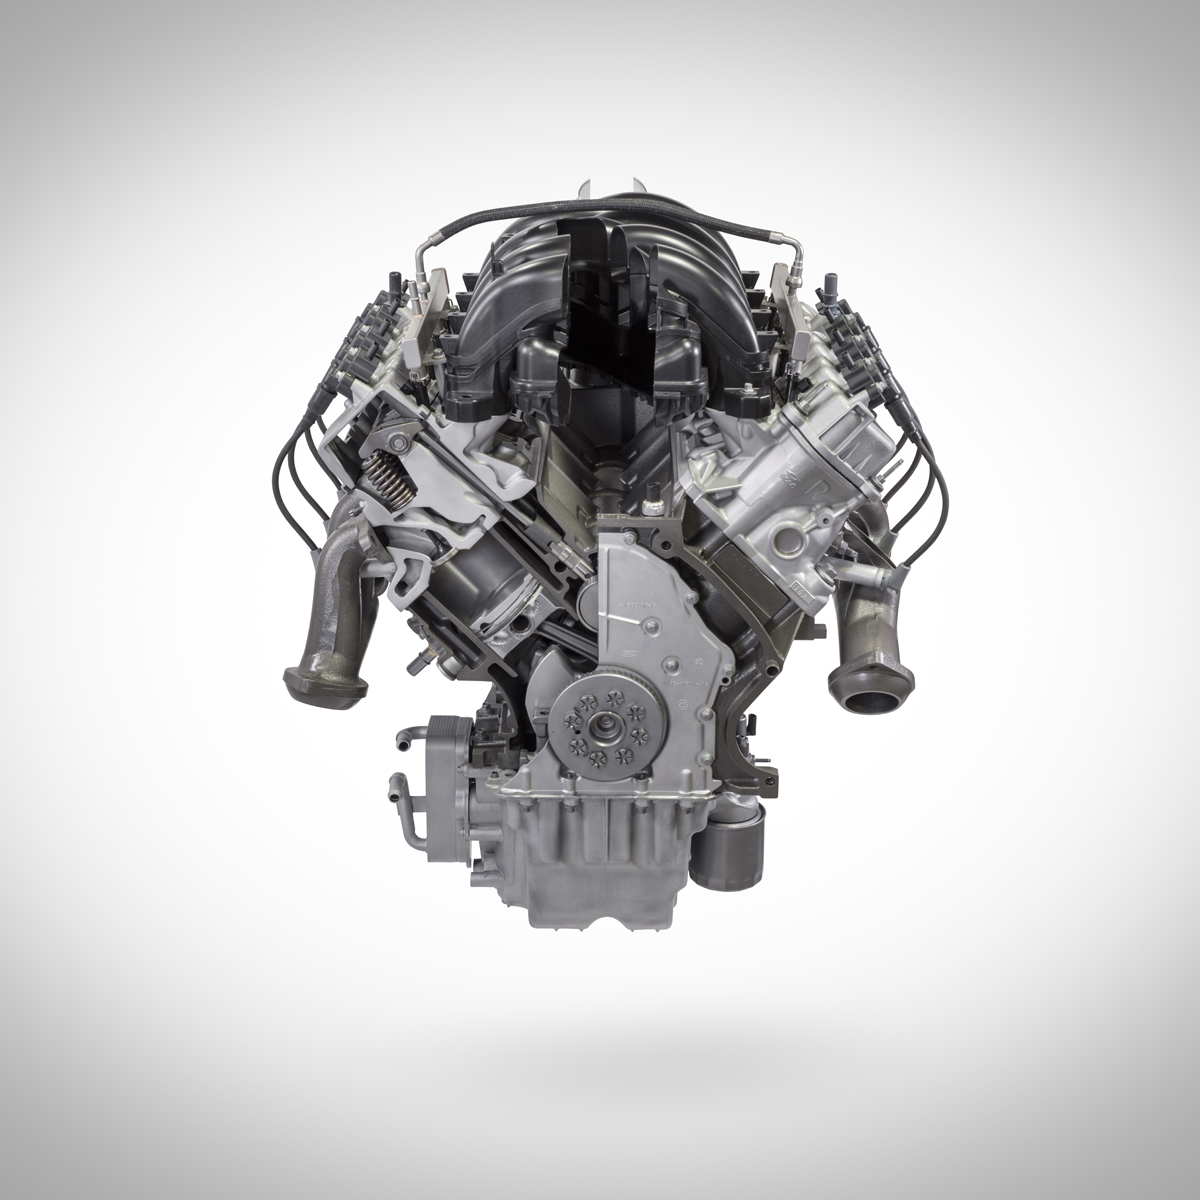 7.3L V8 Ford crate engine from Ford Performance cut away front